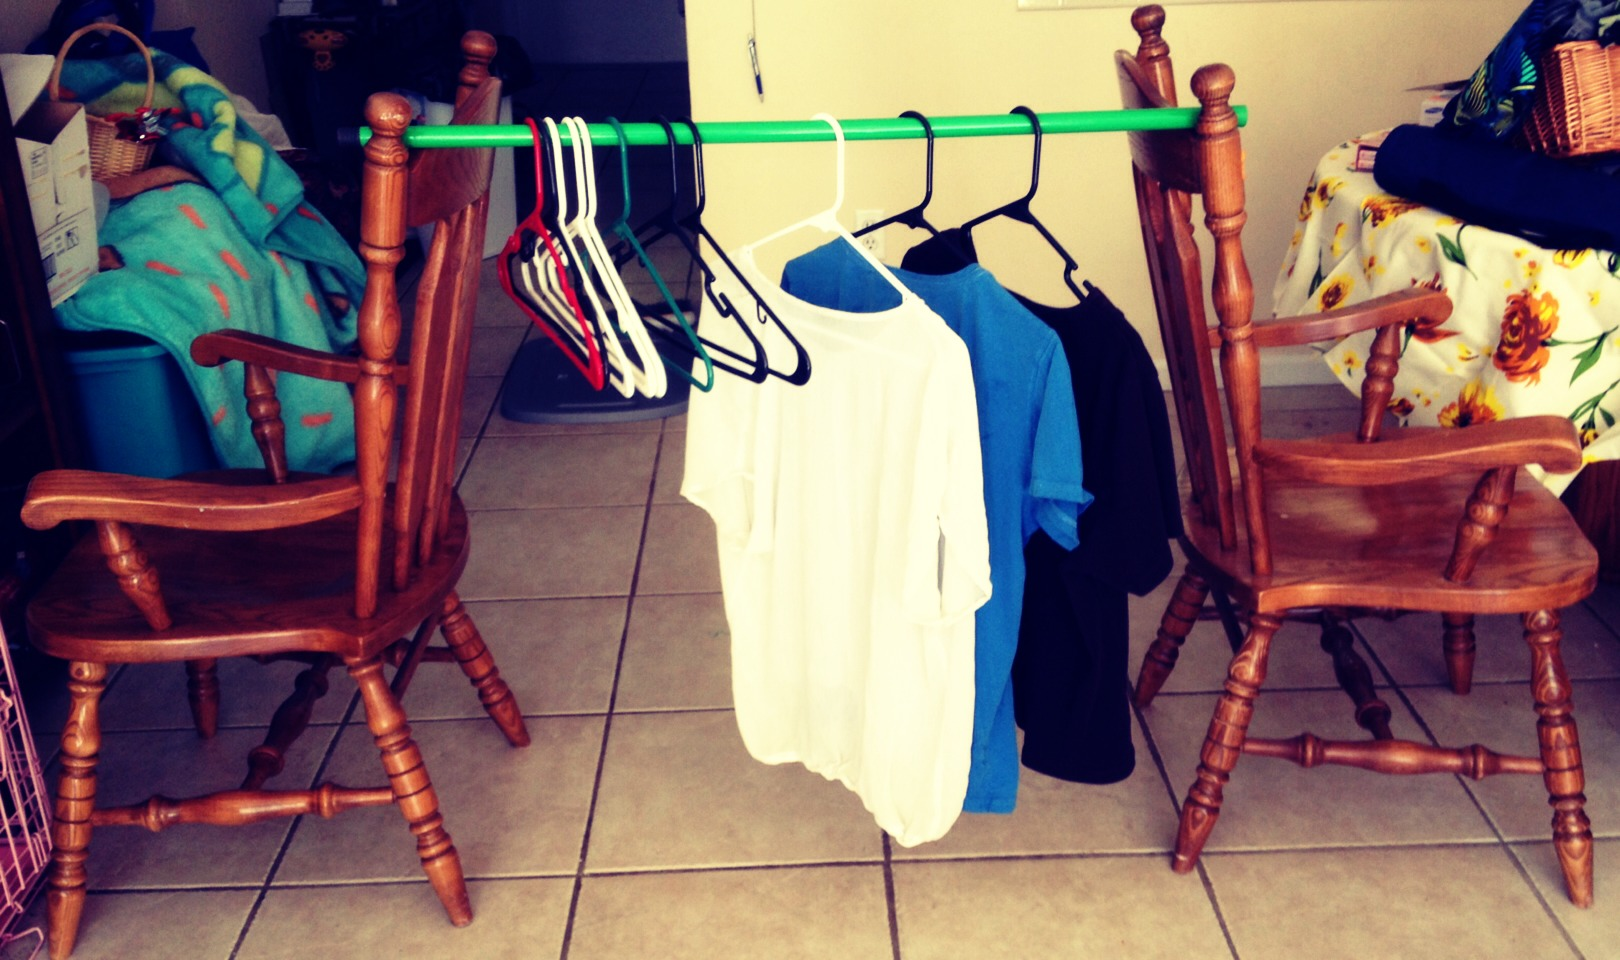 If you want to hang laundry in the living room or dining area, unscrew the brush from your broom and balance the ends on 2 back to back chairs. If you have someone who can carry an end, pick up the whole thing and carry it to where you wish to put it away! Enjoy! Please like :)